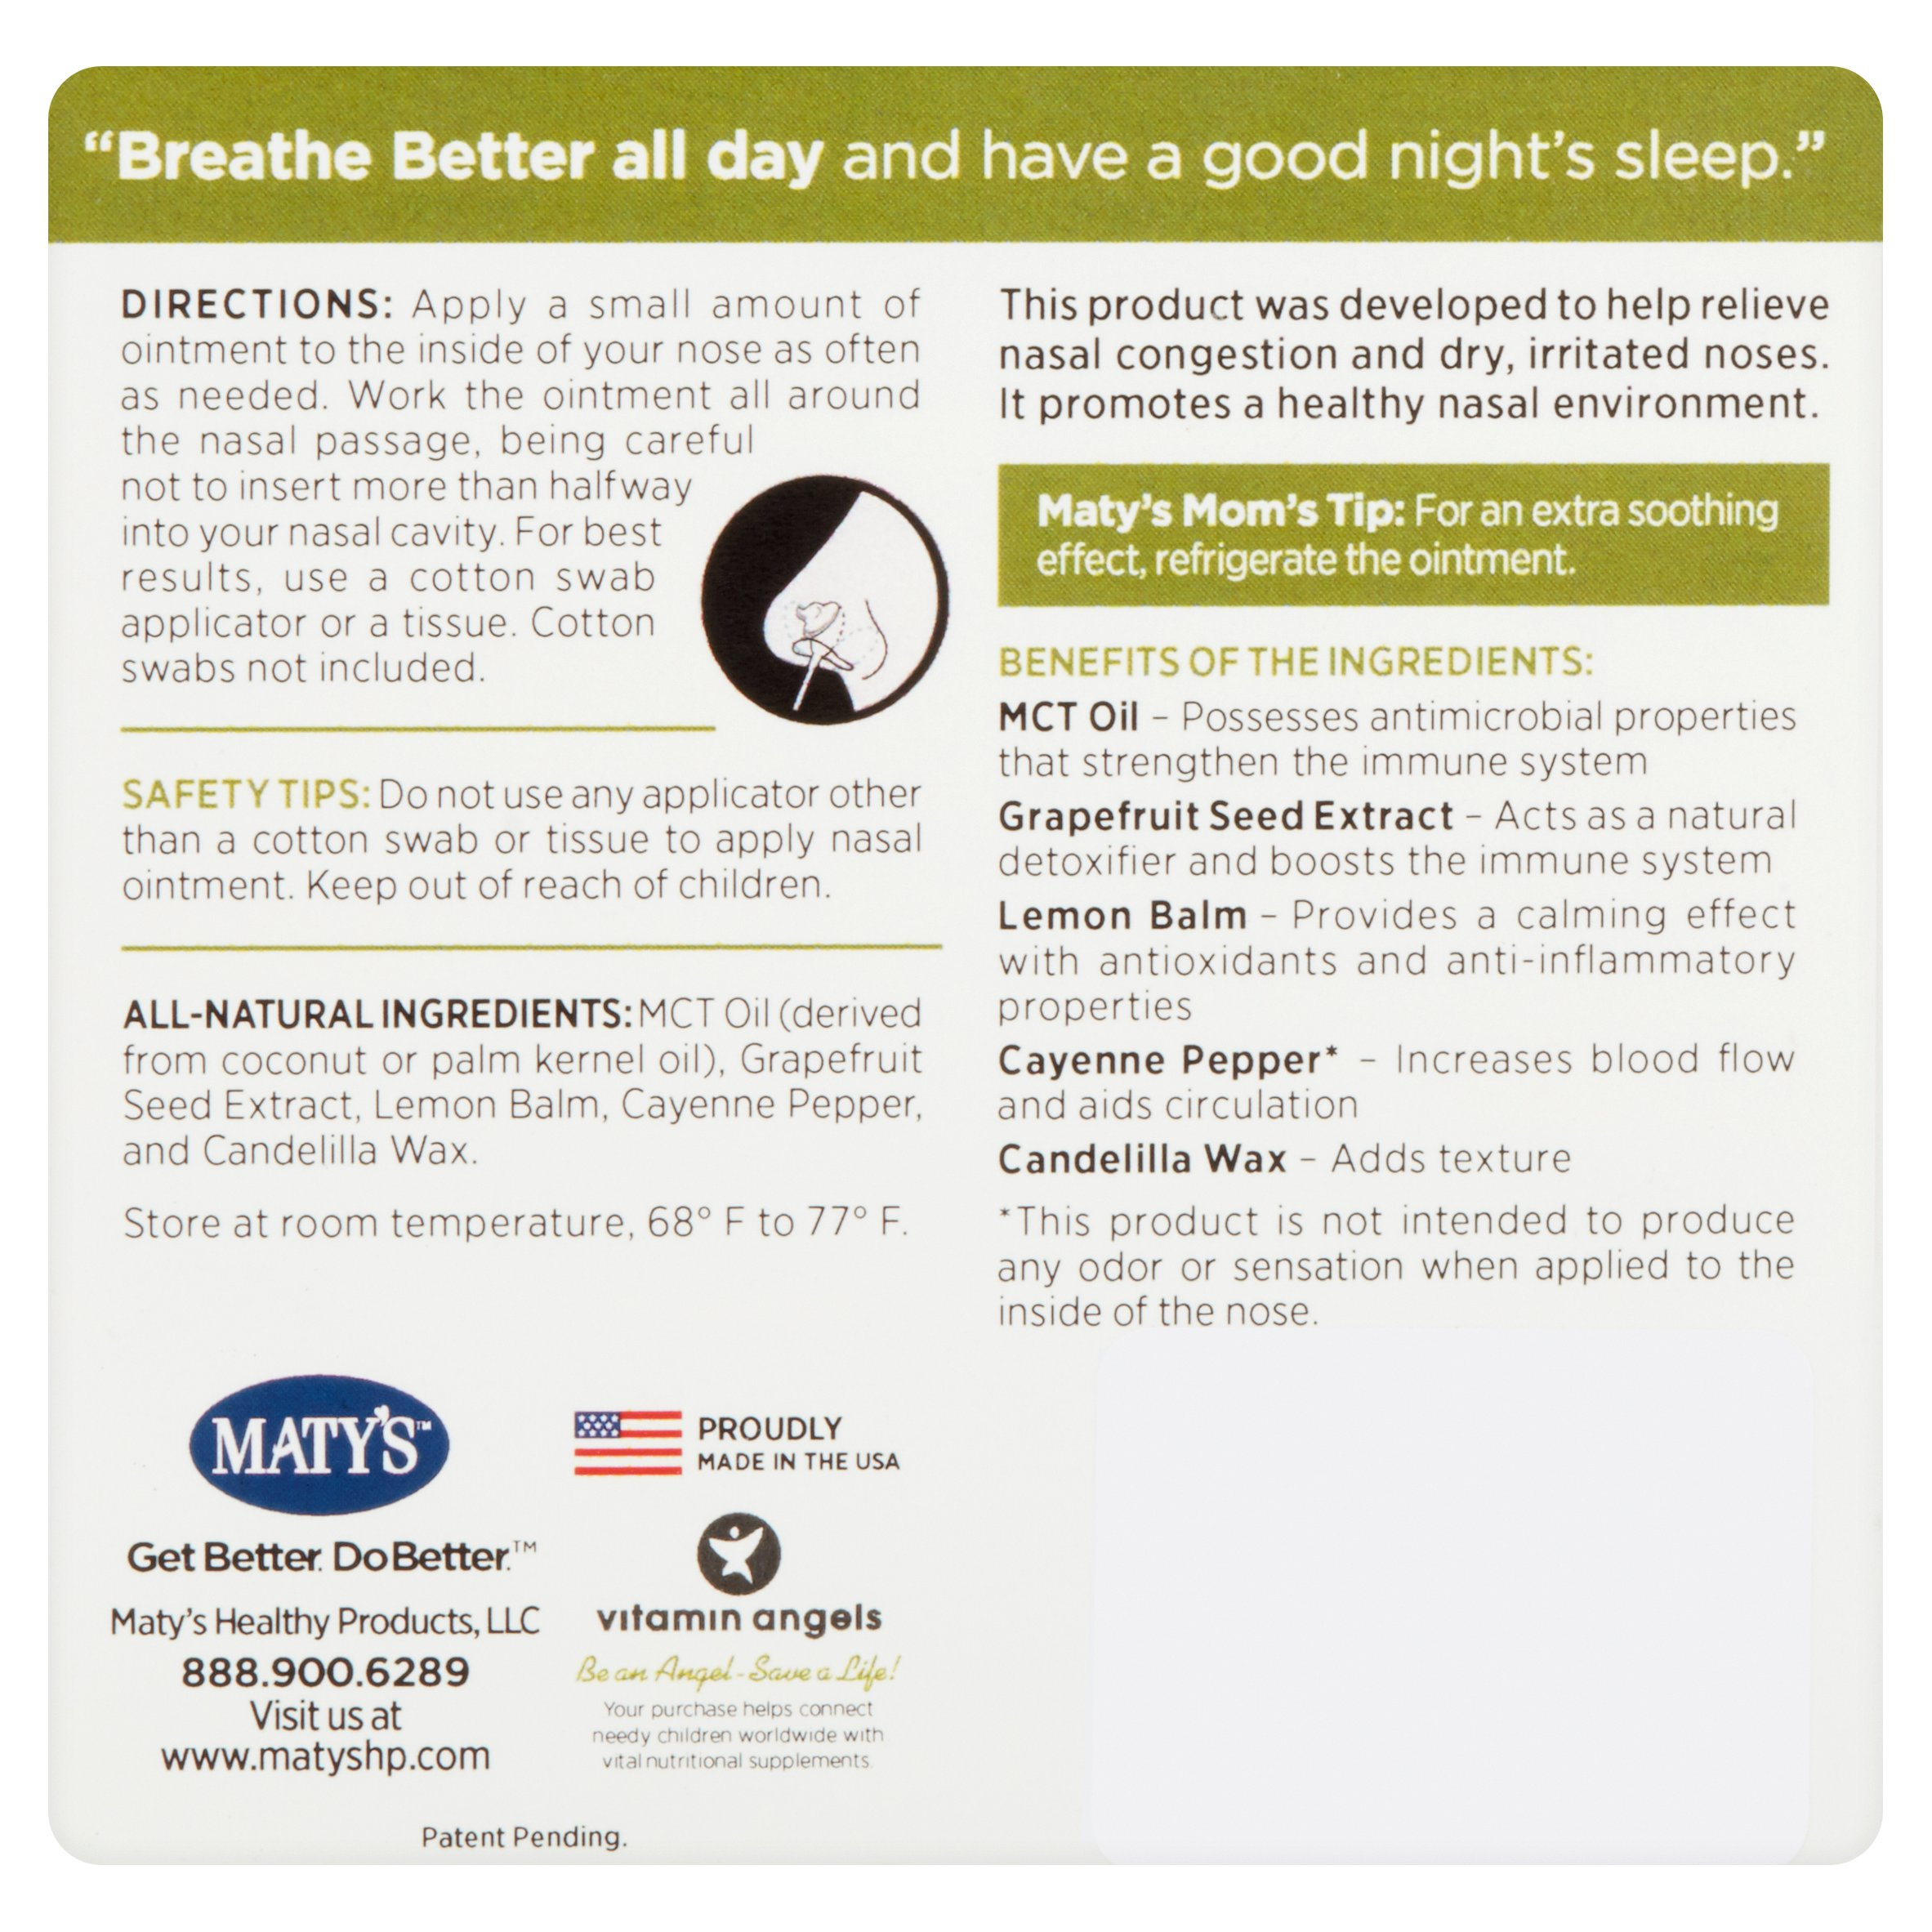 Maty's Breath Better All Natural Nasal Ointment, 0 5 oz